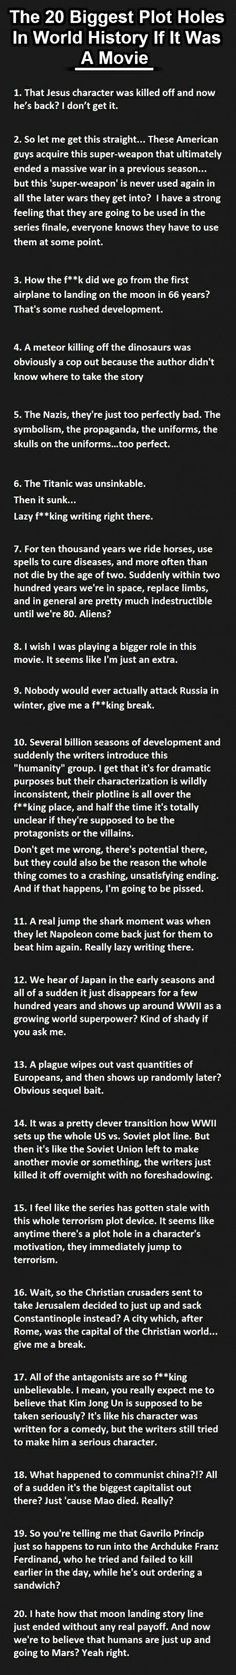 The biggest plot holes if World History was a movie. Not my kind of language, but the contents - they are spot on . Great !!!